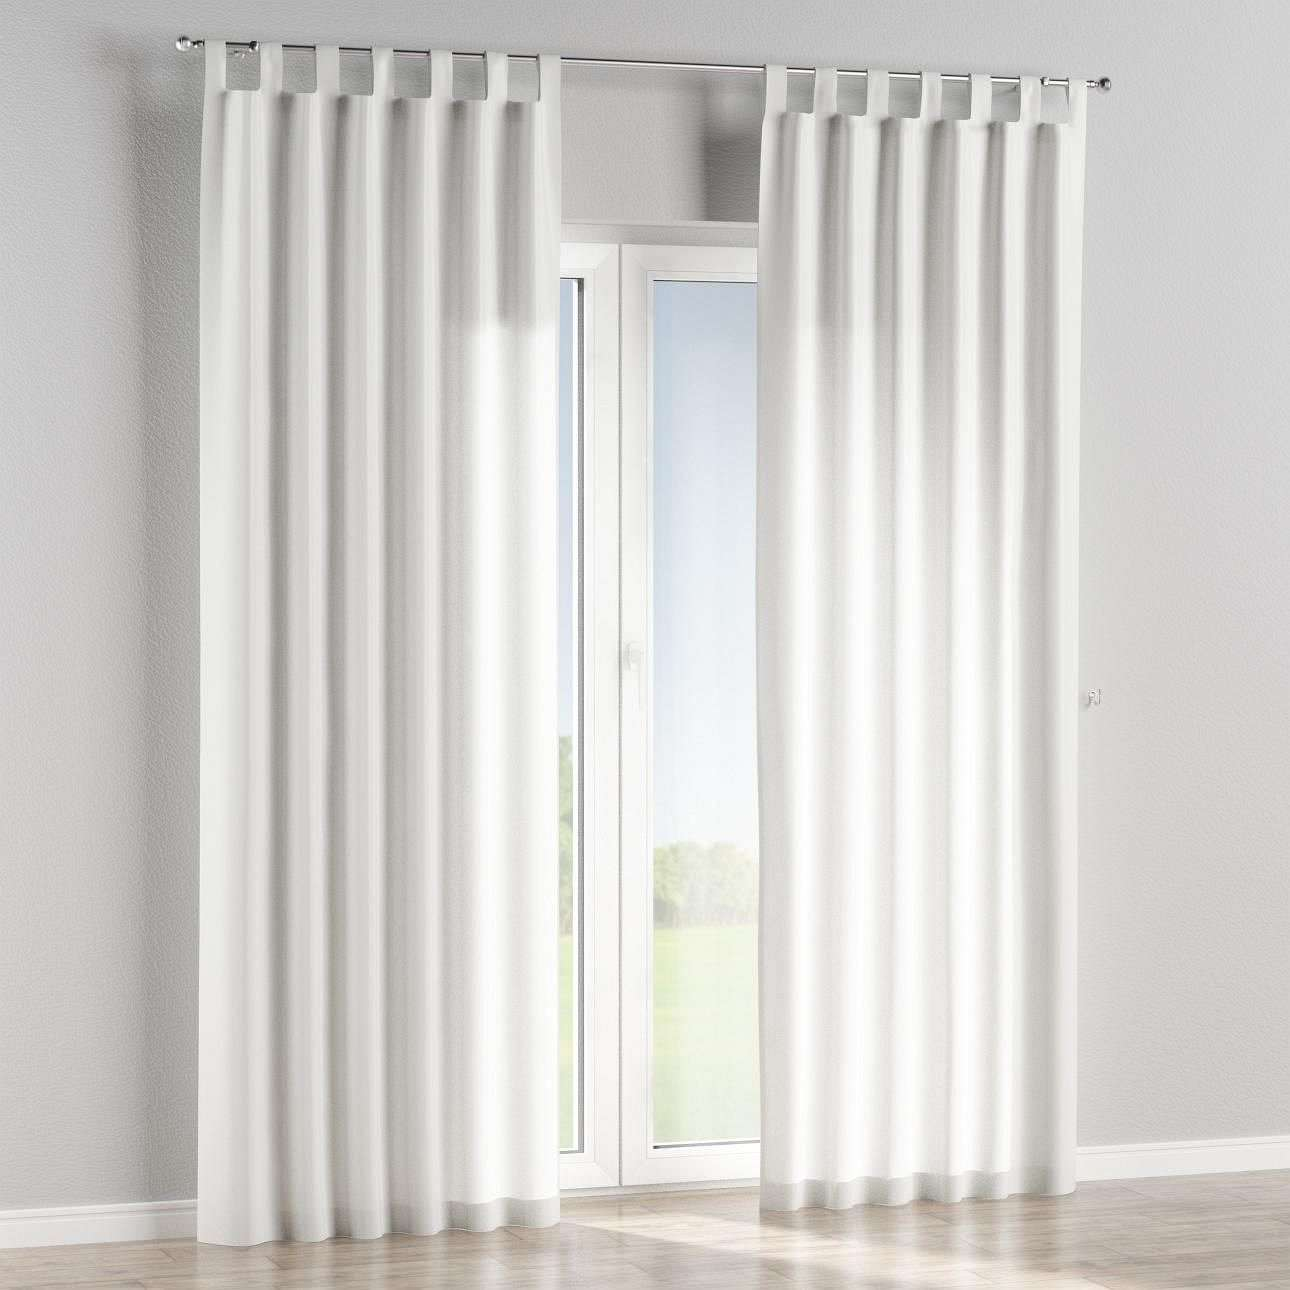 Tab top lined curtains in collection Cardiff, fabric: 136-21